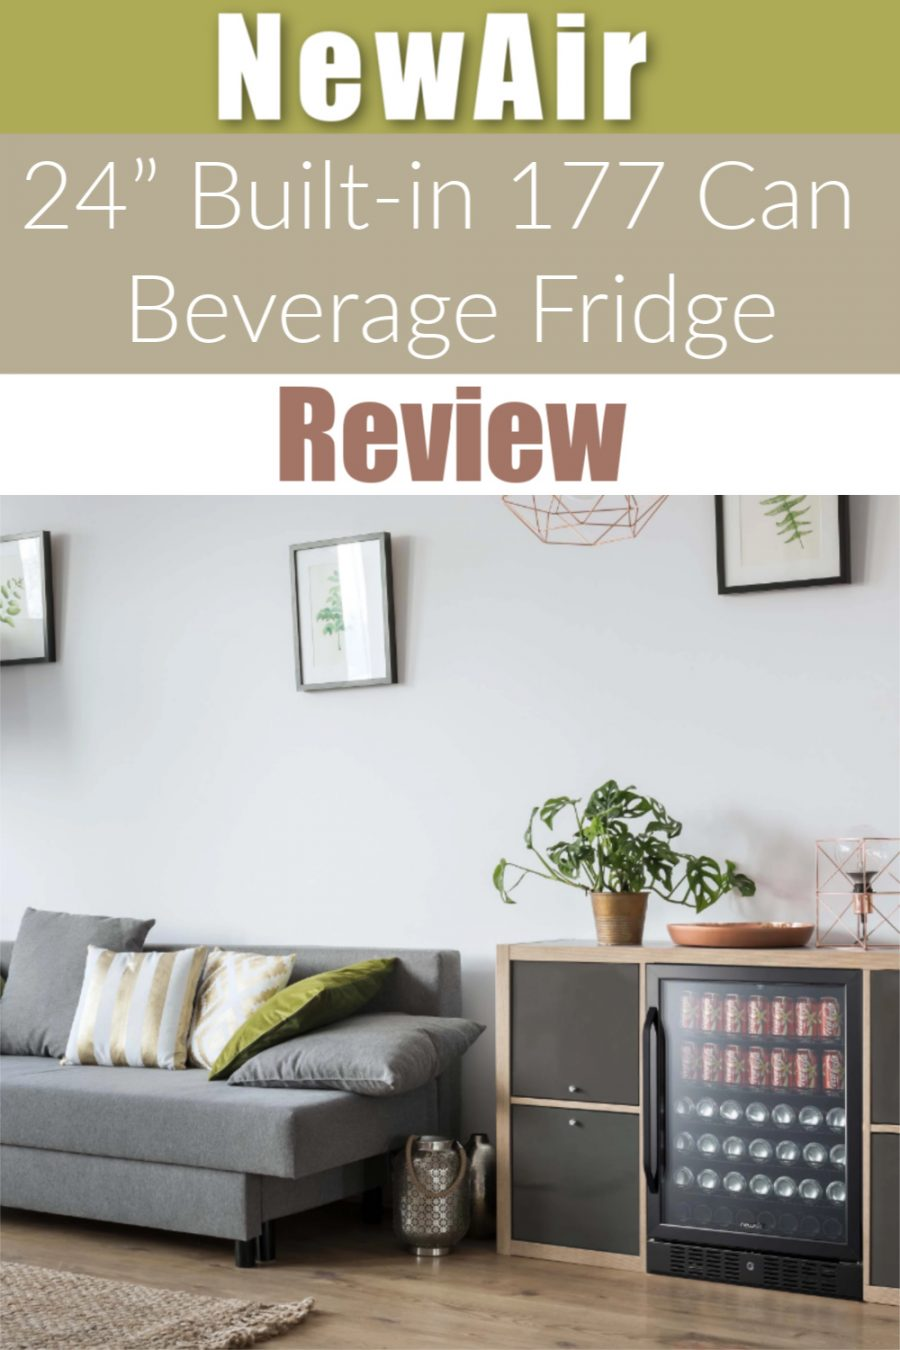 NewAir 24 Inch Built in 177 Can Beverage Fridge Review